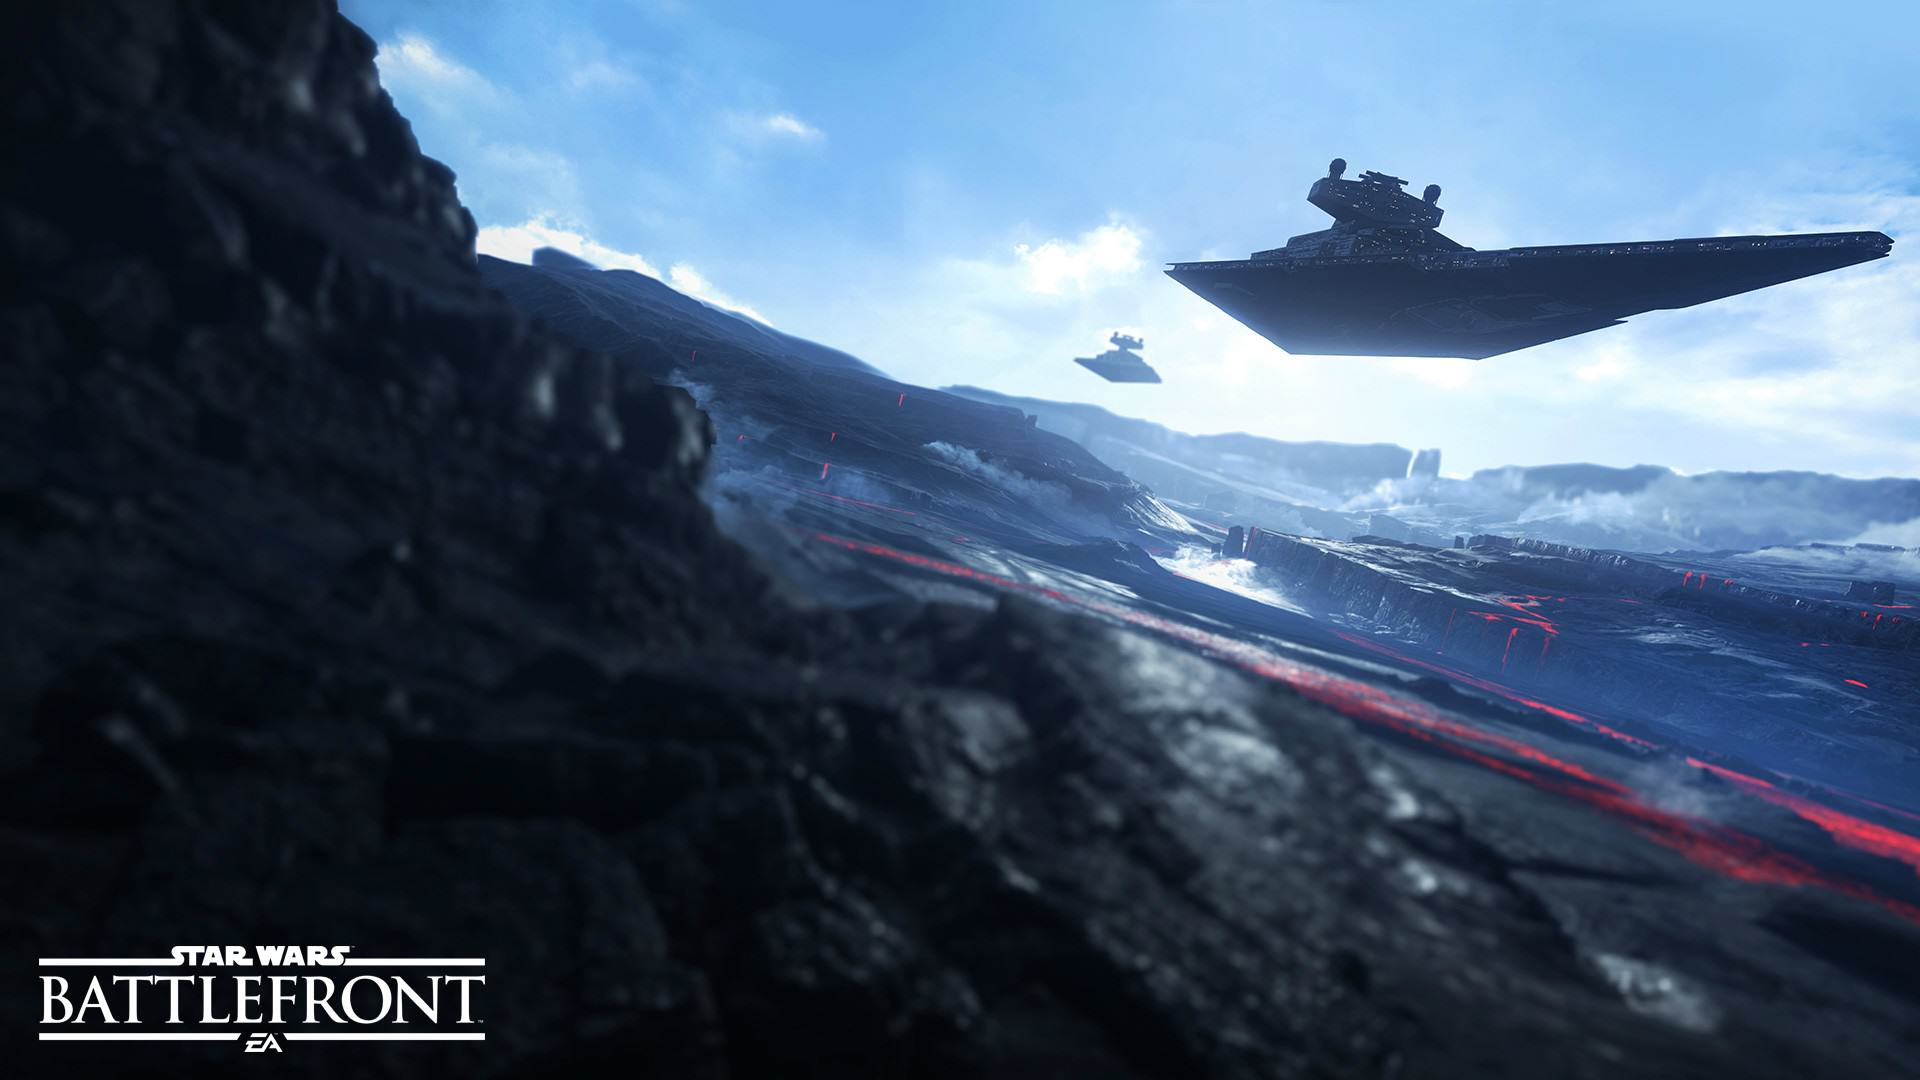 Star Wars: Battlefront Looks Stunning In These Desktop Backgrounds And Images UNILAD 262yb7Z Imgur 14